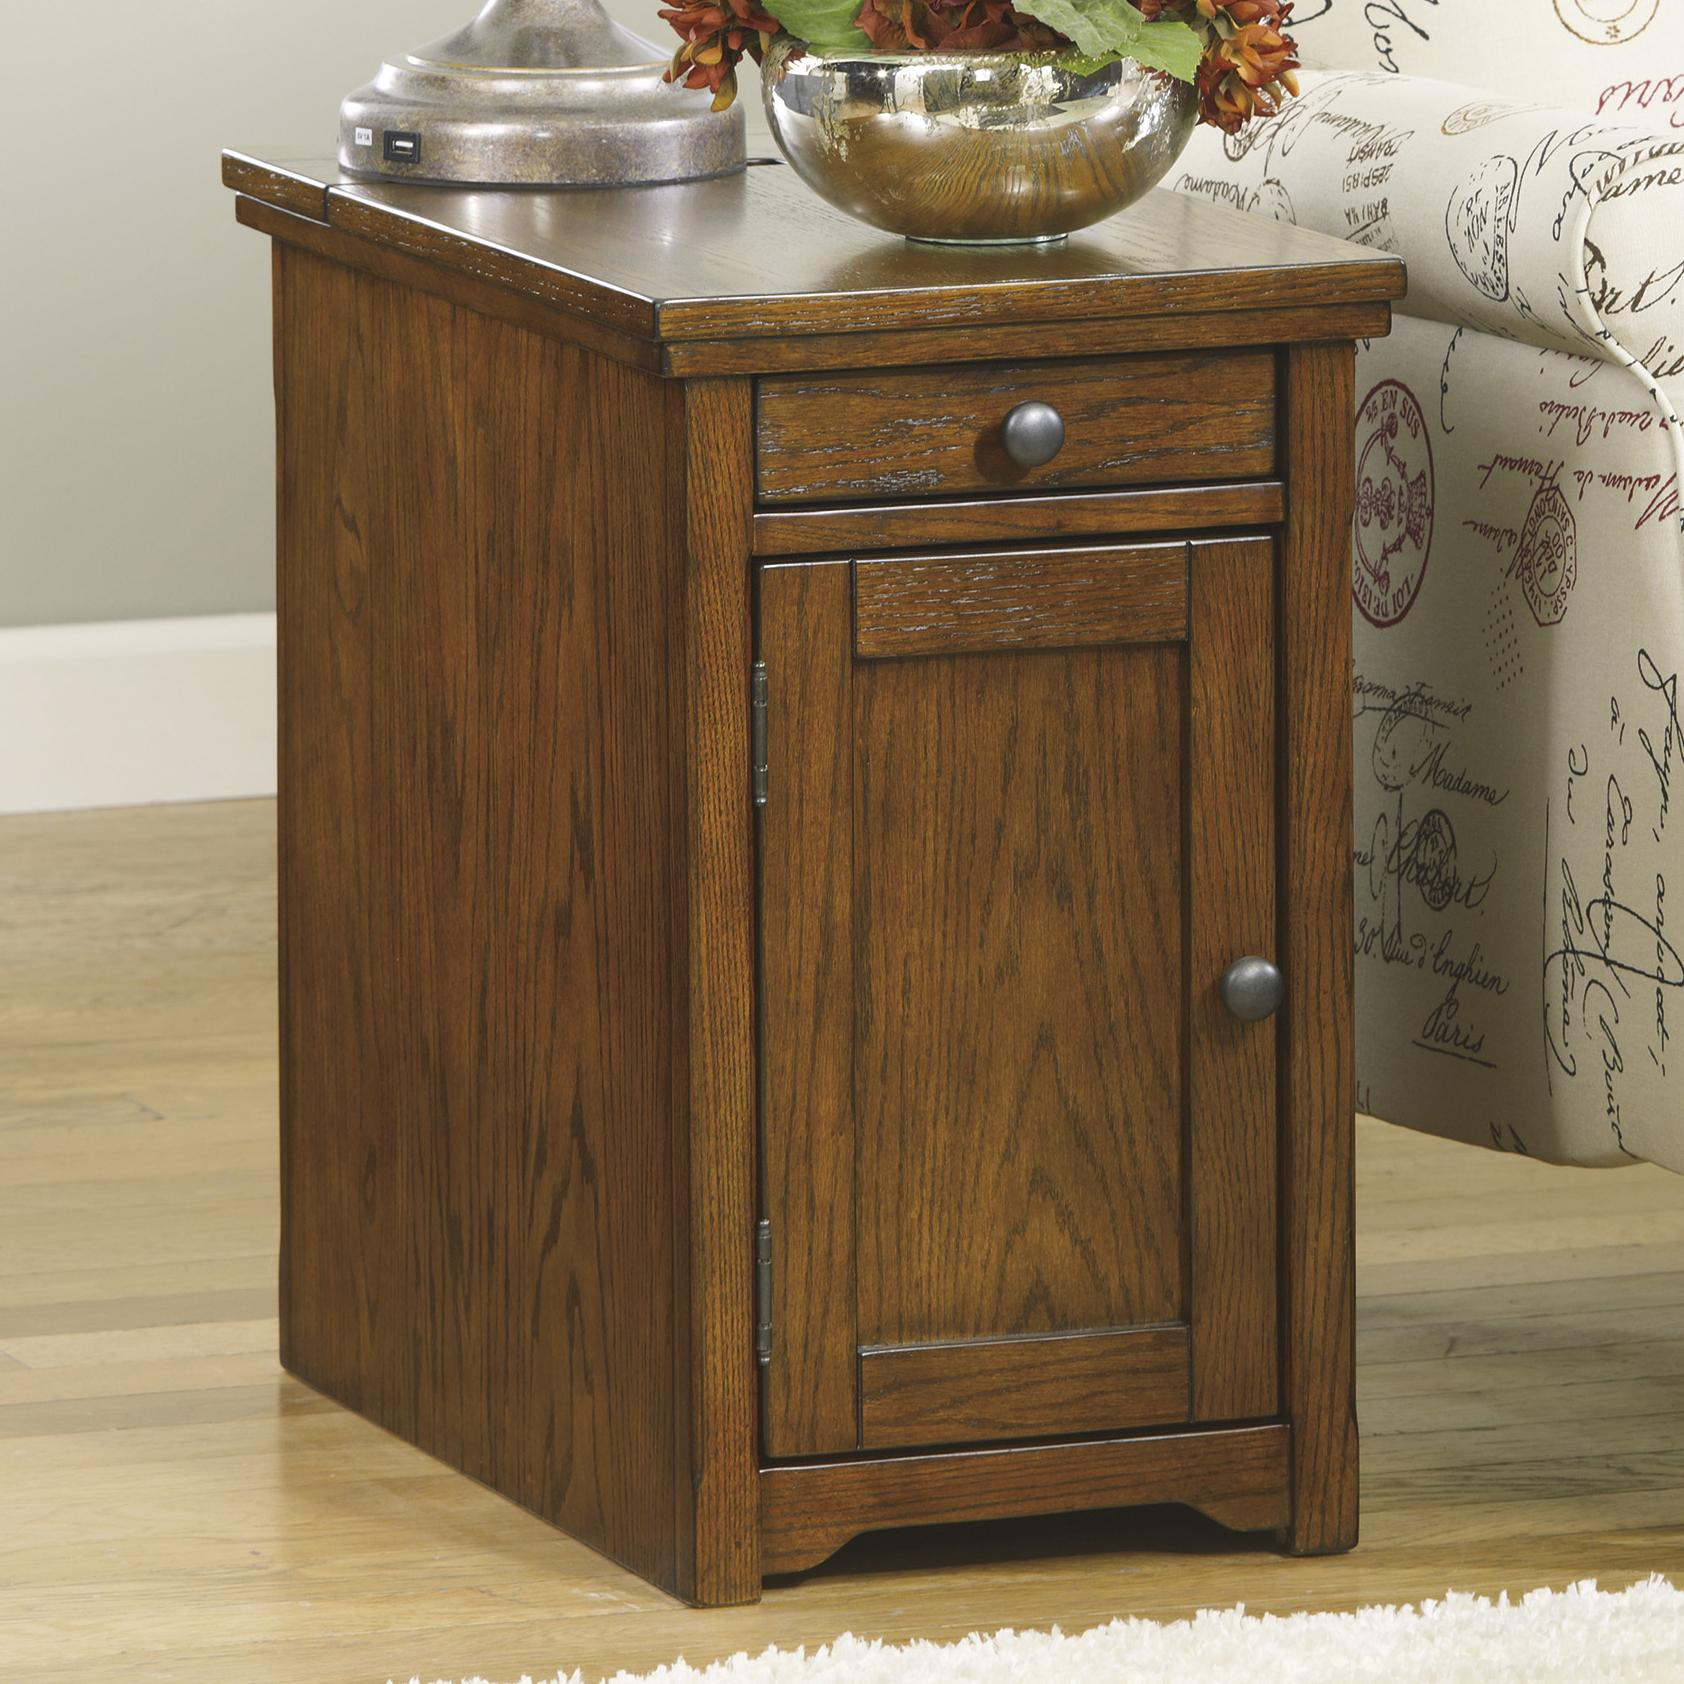 Signature Design by Ashley Laflorn Chair Side End Table - Item Number: T127-699